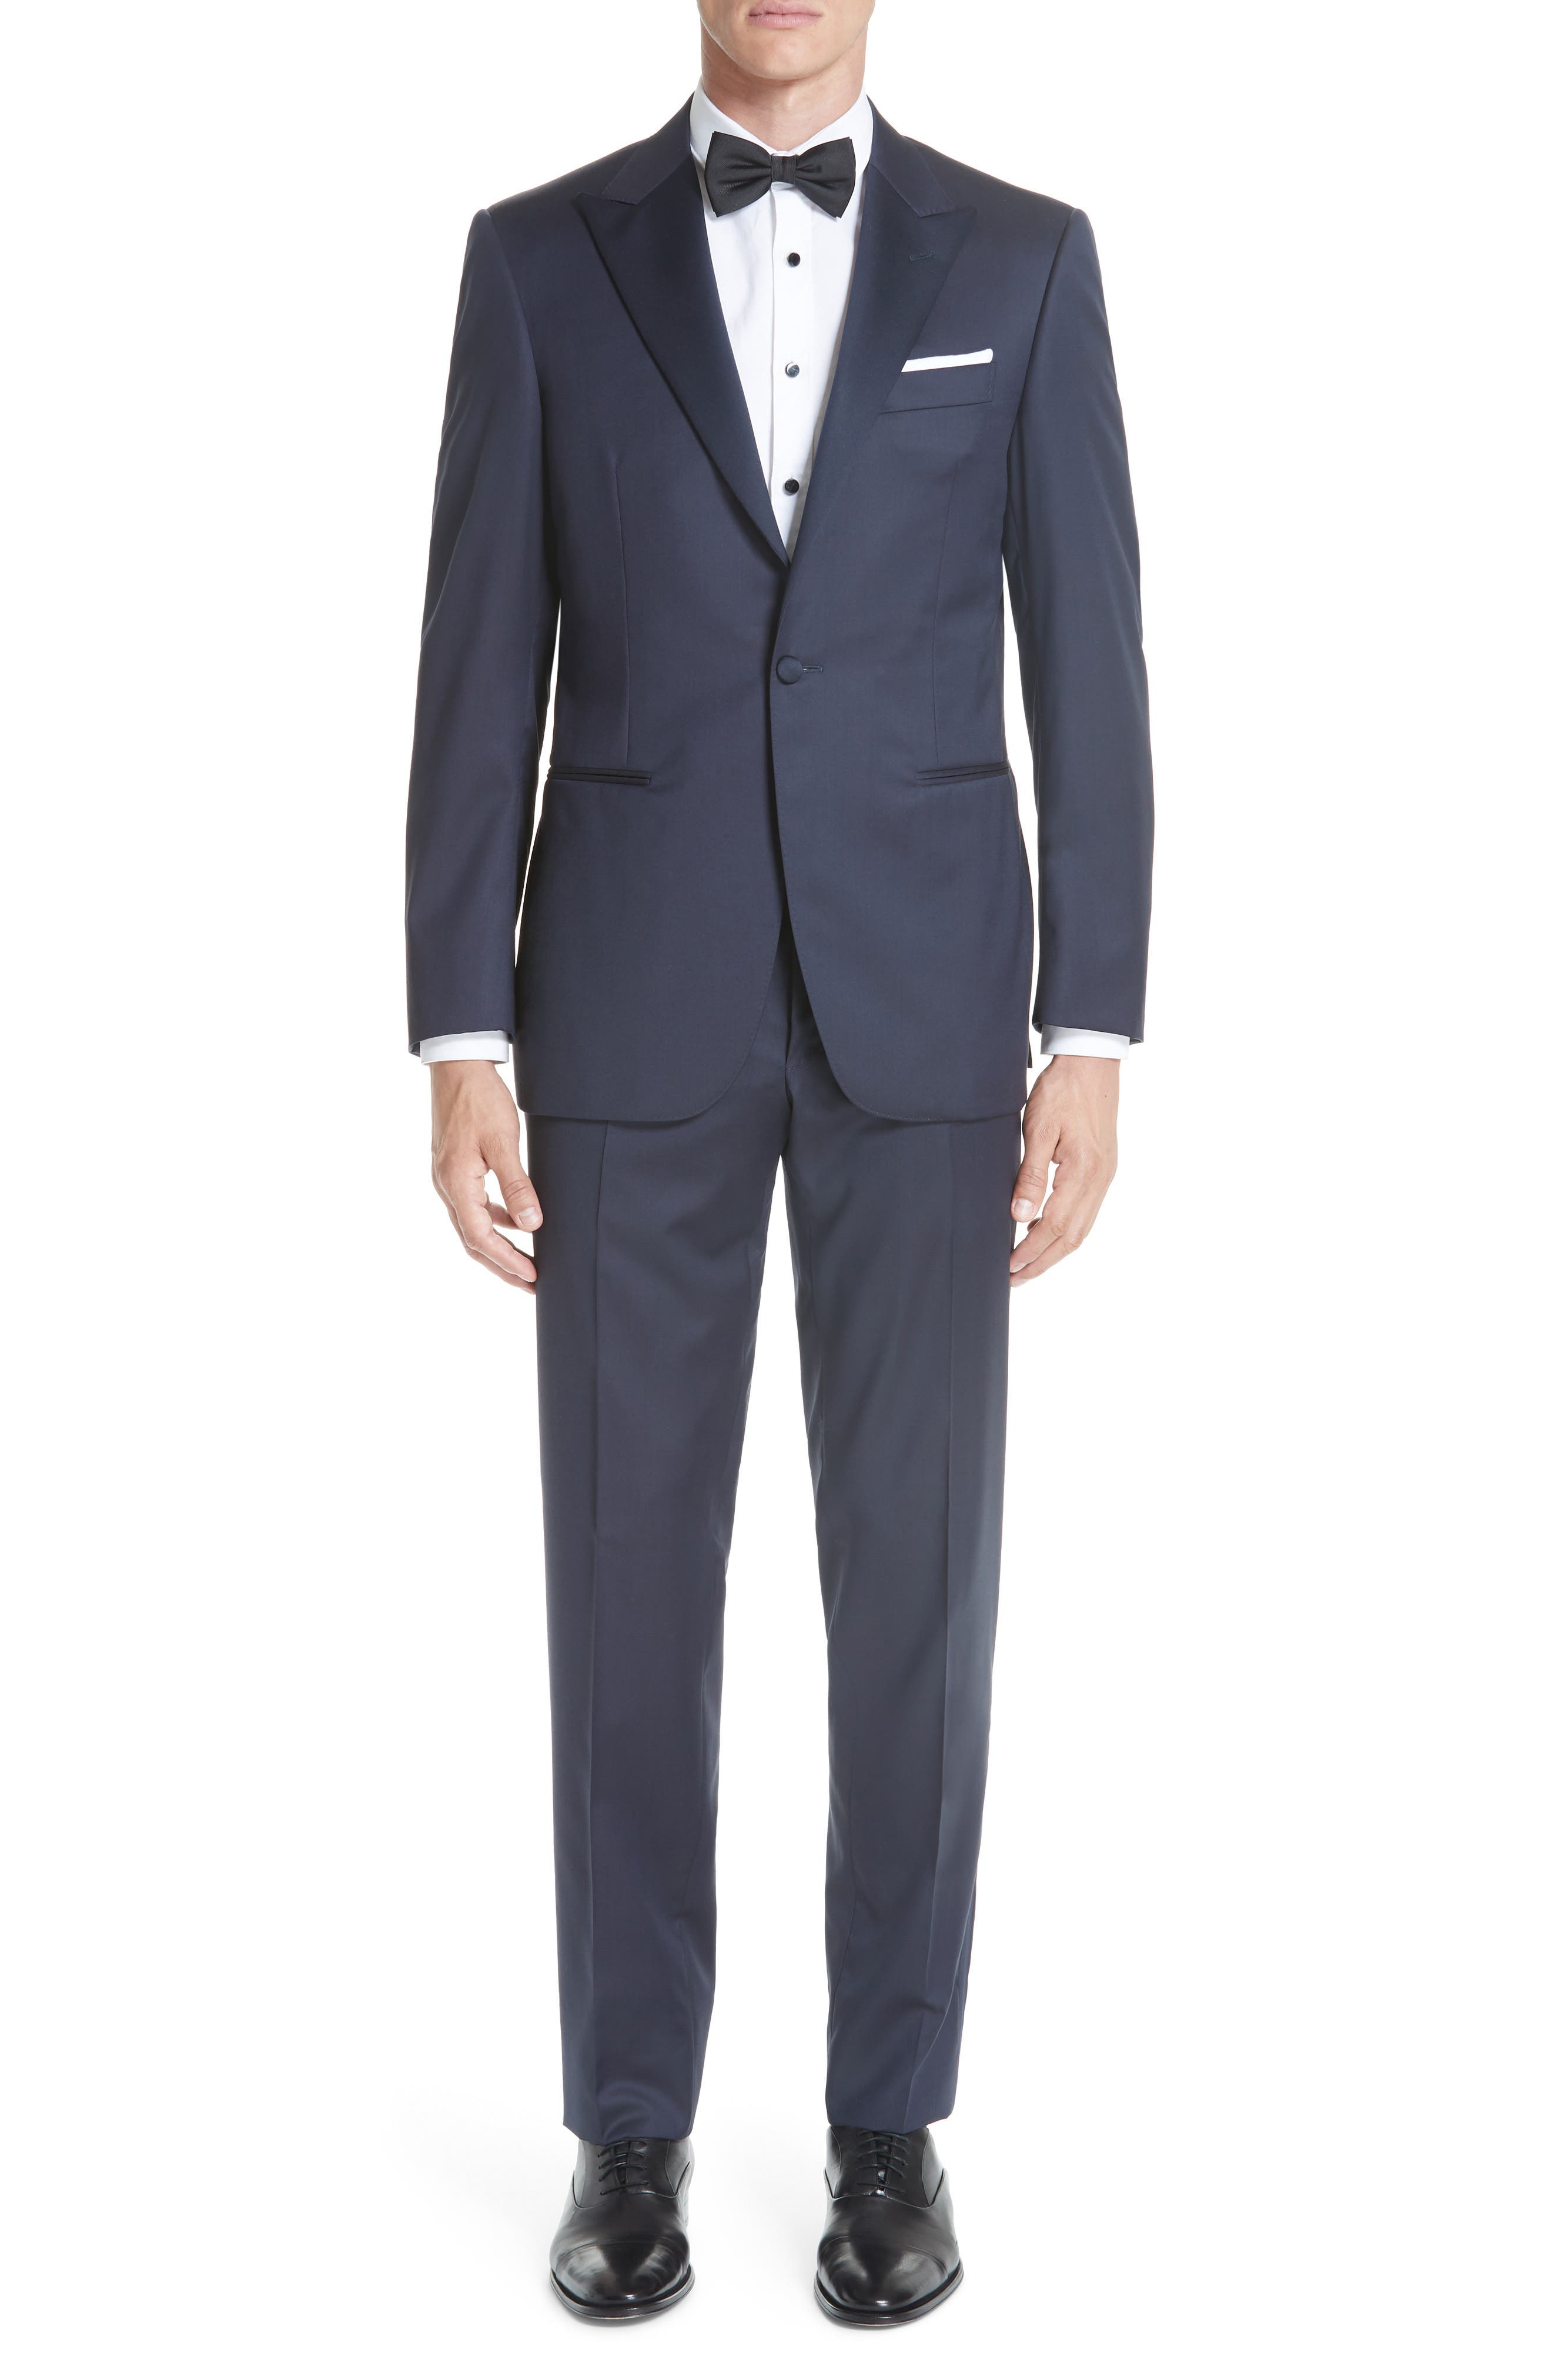 CANALI, Classic Fit Wool Tuxedo, Main thumbnail 1, color, NAVY